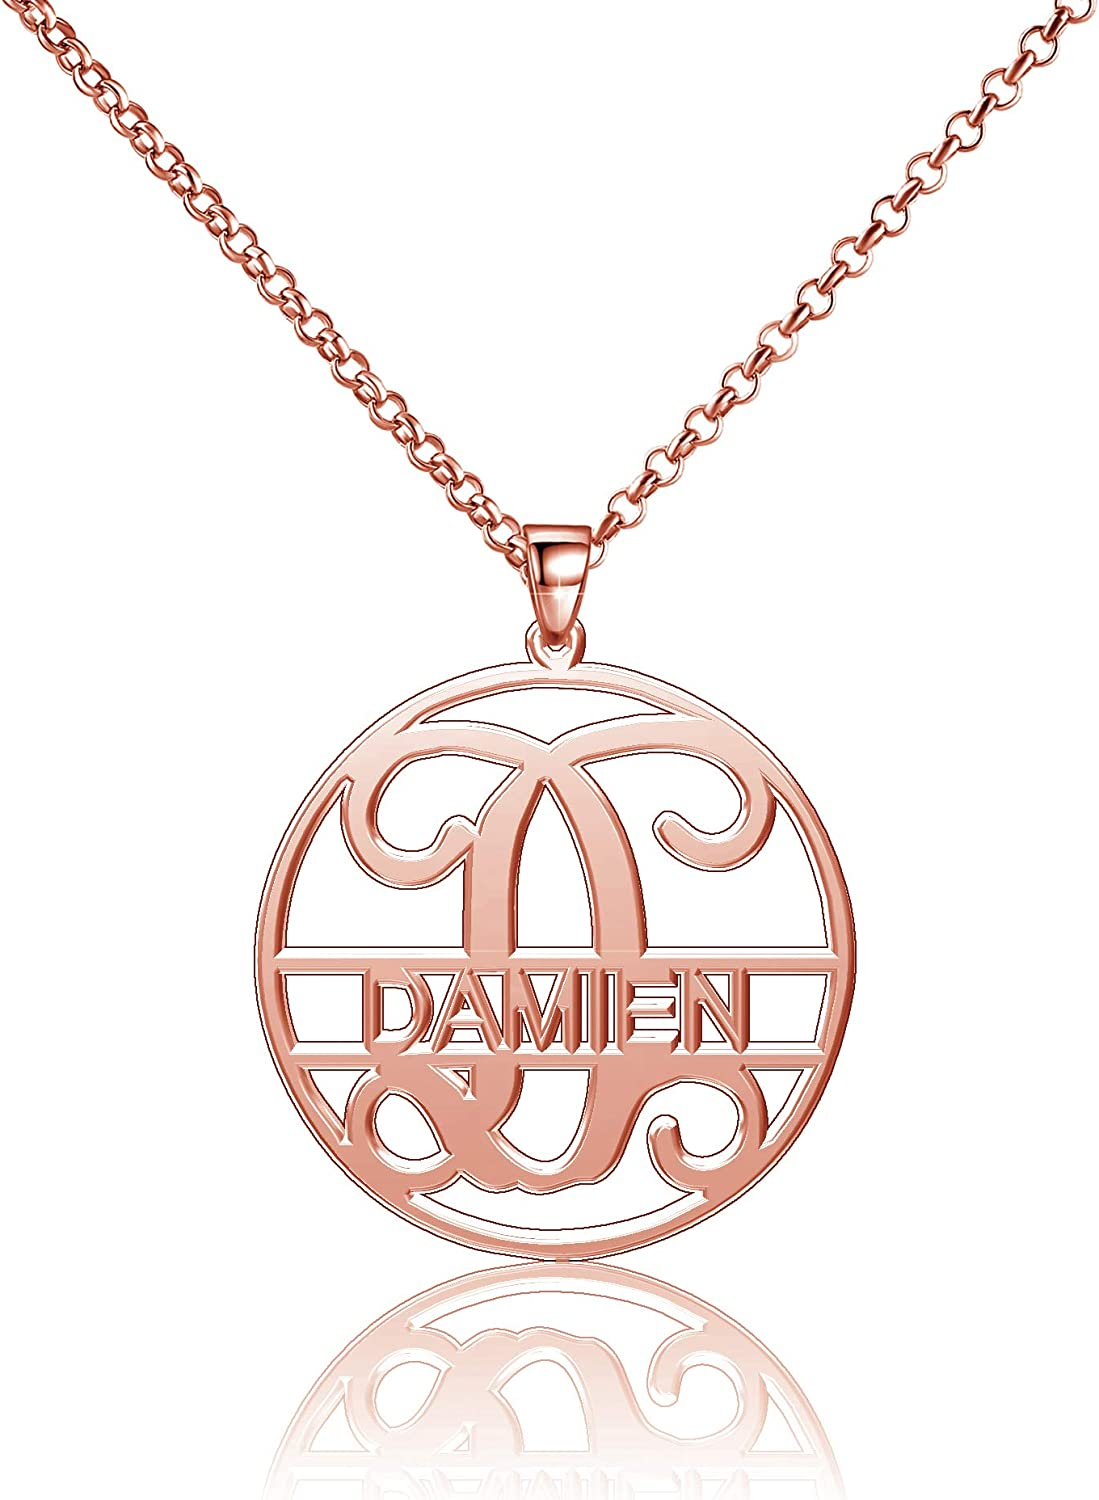 Moonlight Collections 25mm Damien Name Necklace Sterling Silver Name Necklace Personalized Jewelry 14-18 Chain Rose Gold Plated